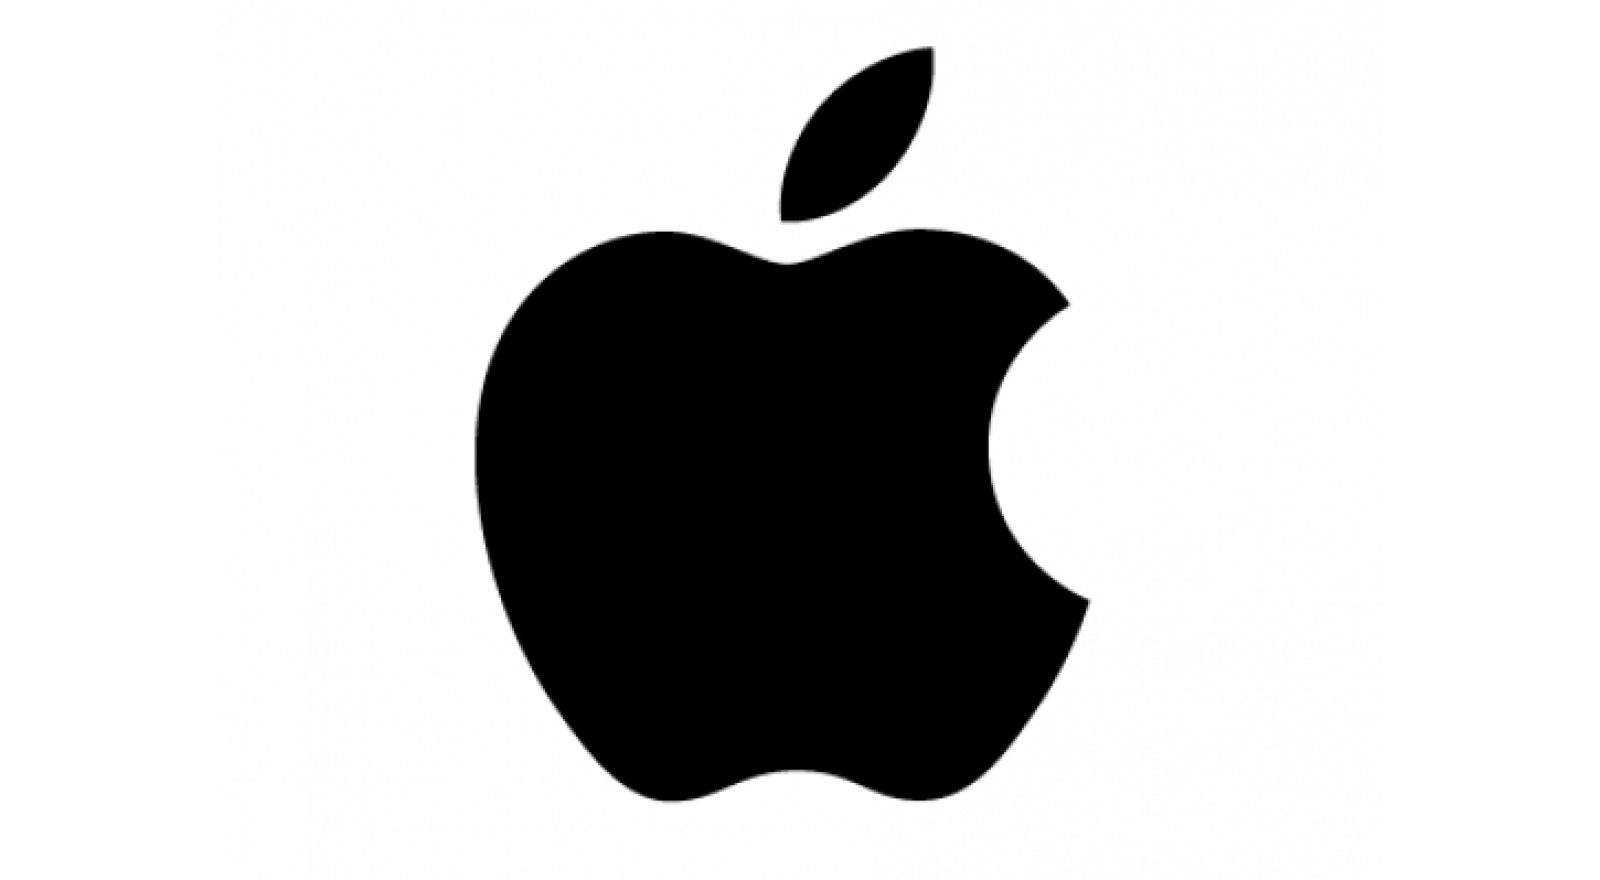 Apple Logo black2